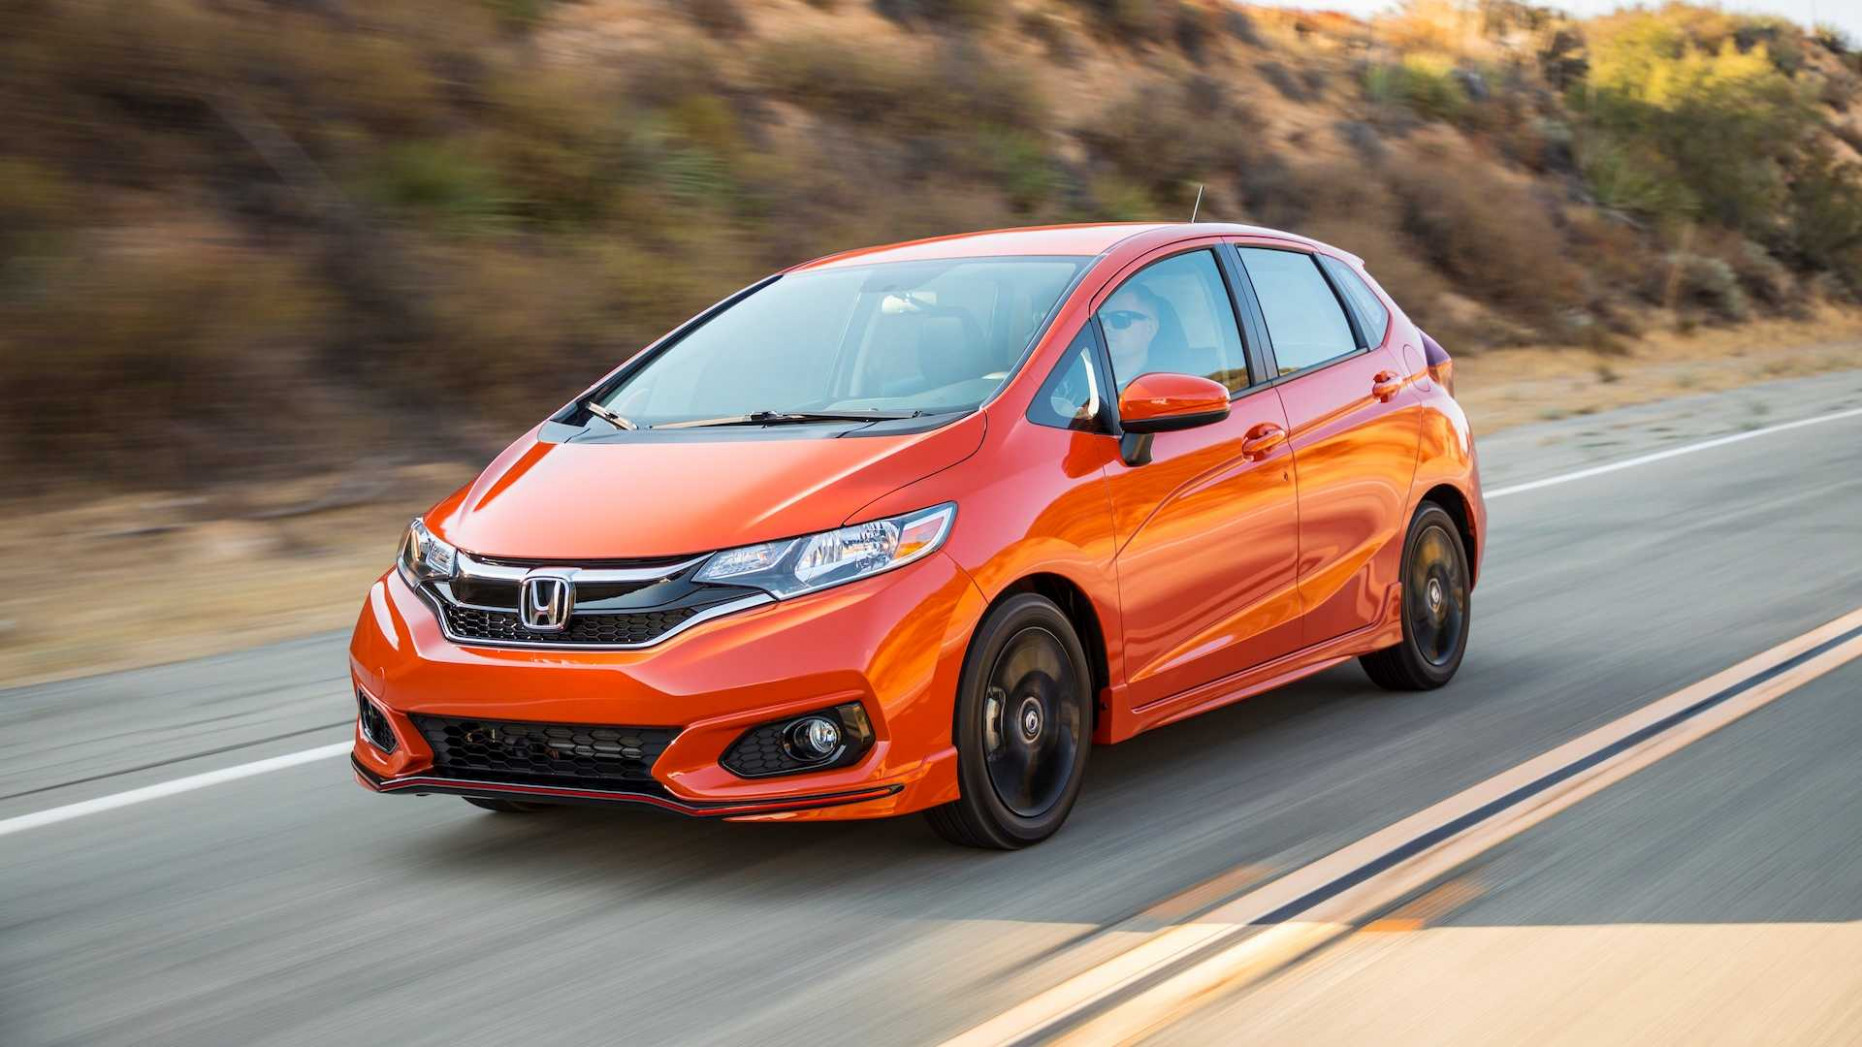 U.S. Stuck With The Old Honda Fit For 12MY